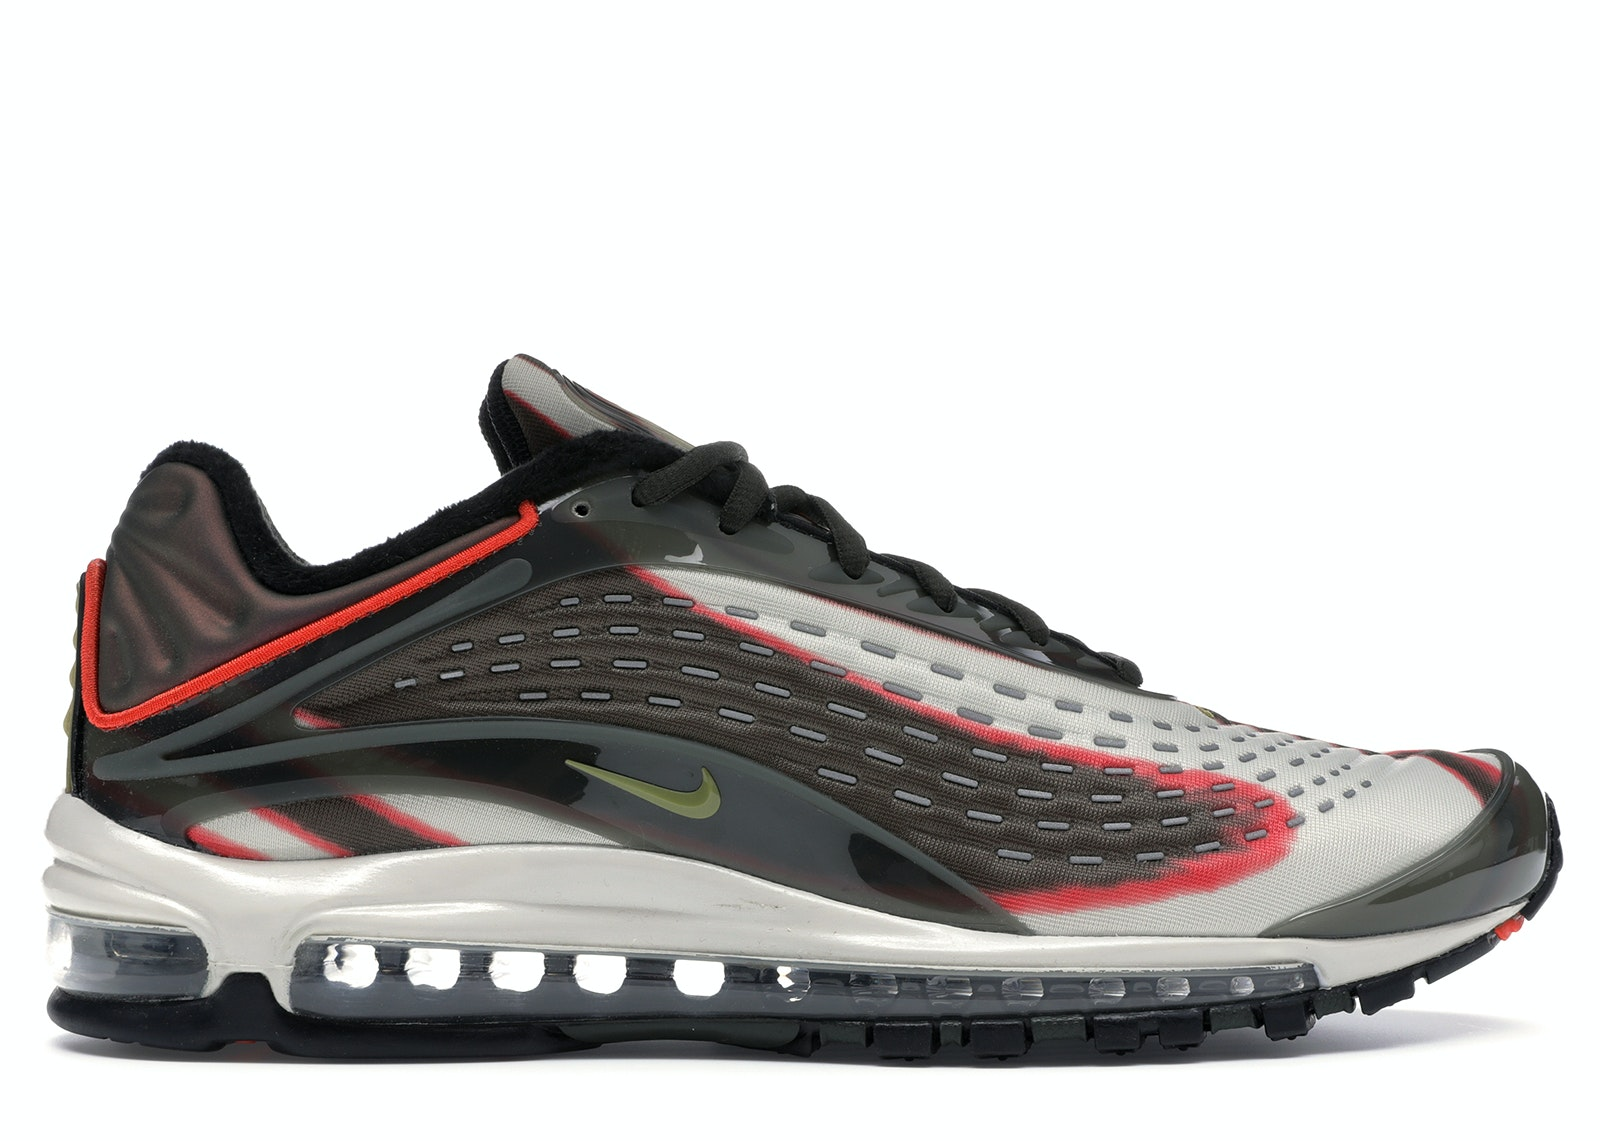 Nike Air Max Deluxe Sequoia Men's 9.5 Green Grey Running Shoes AJ7831-300 DS